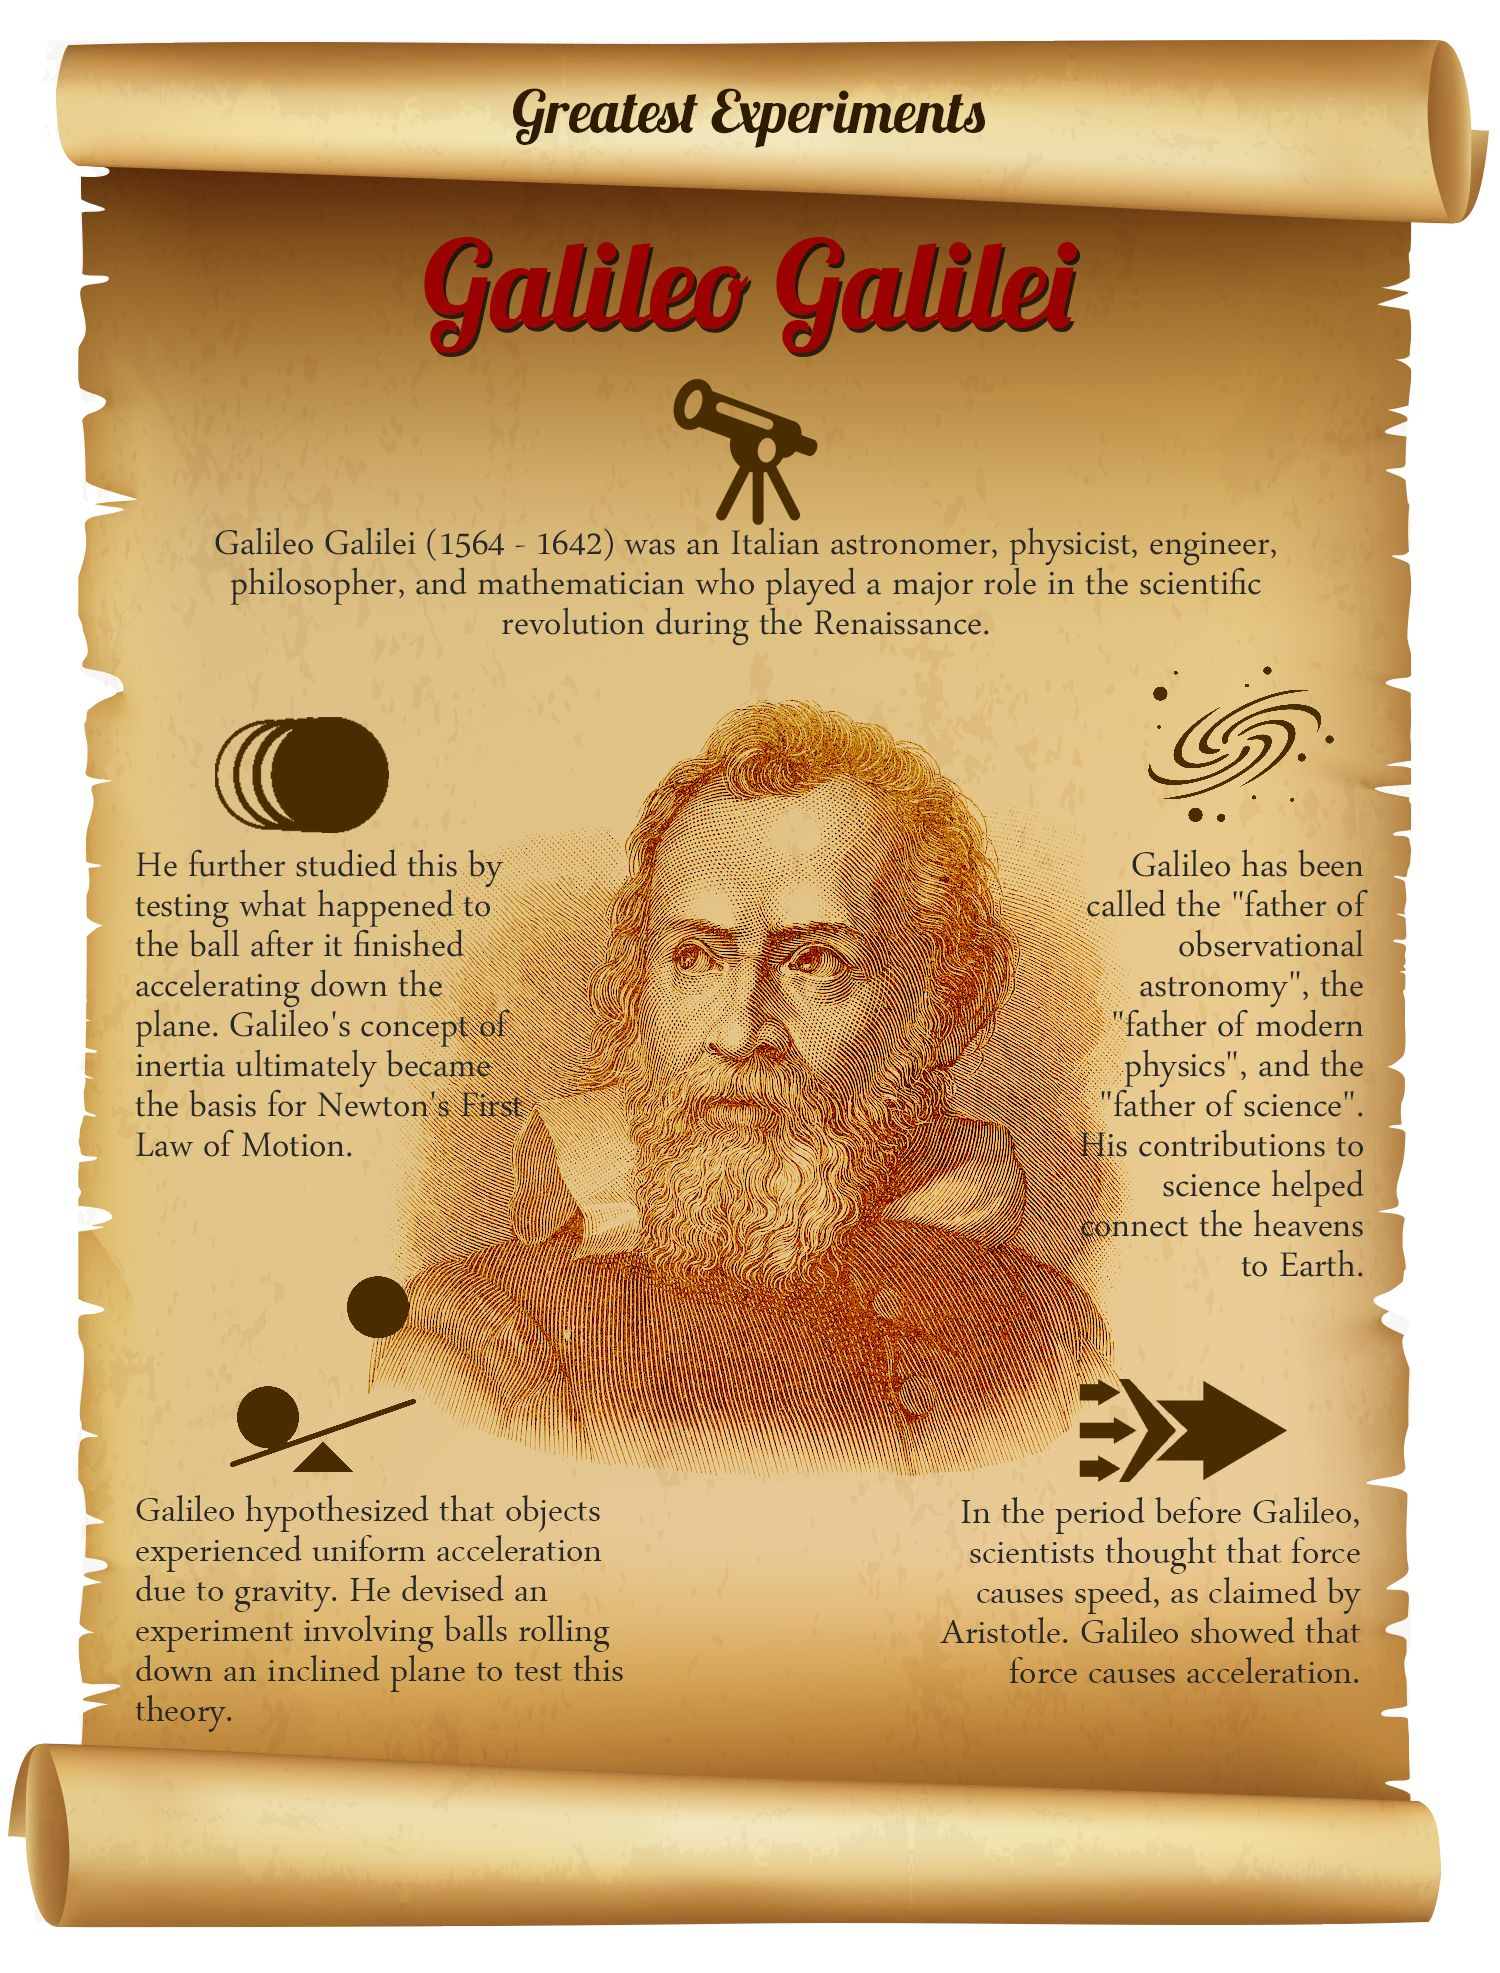 contributions of galileo galilei to modern astronomy religion essay Modern astronomy, the bible, and creation martin gaskell astronomy department, university of texas, austin, tx 78712-0259 summary this the web version of a handout intended for christians and others interested in bible and science.